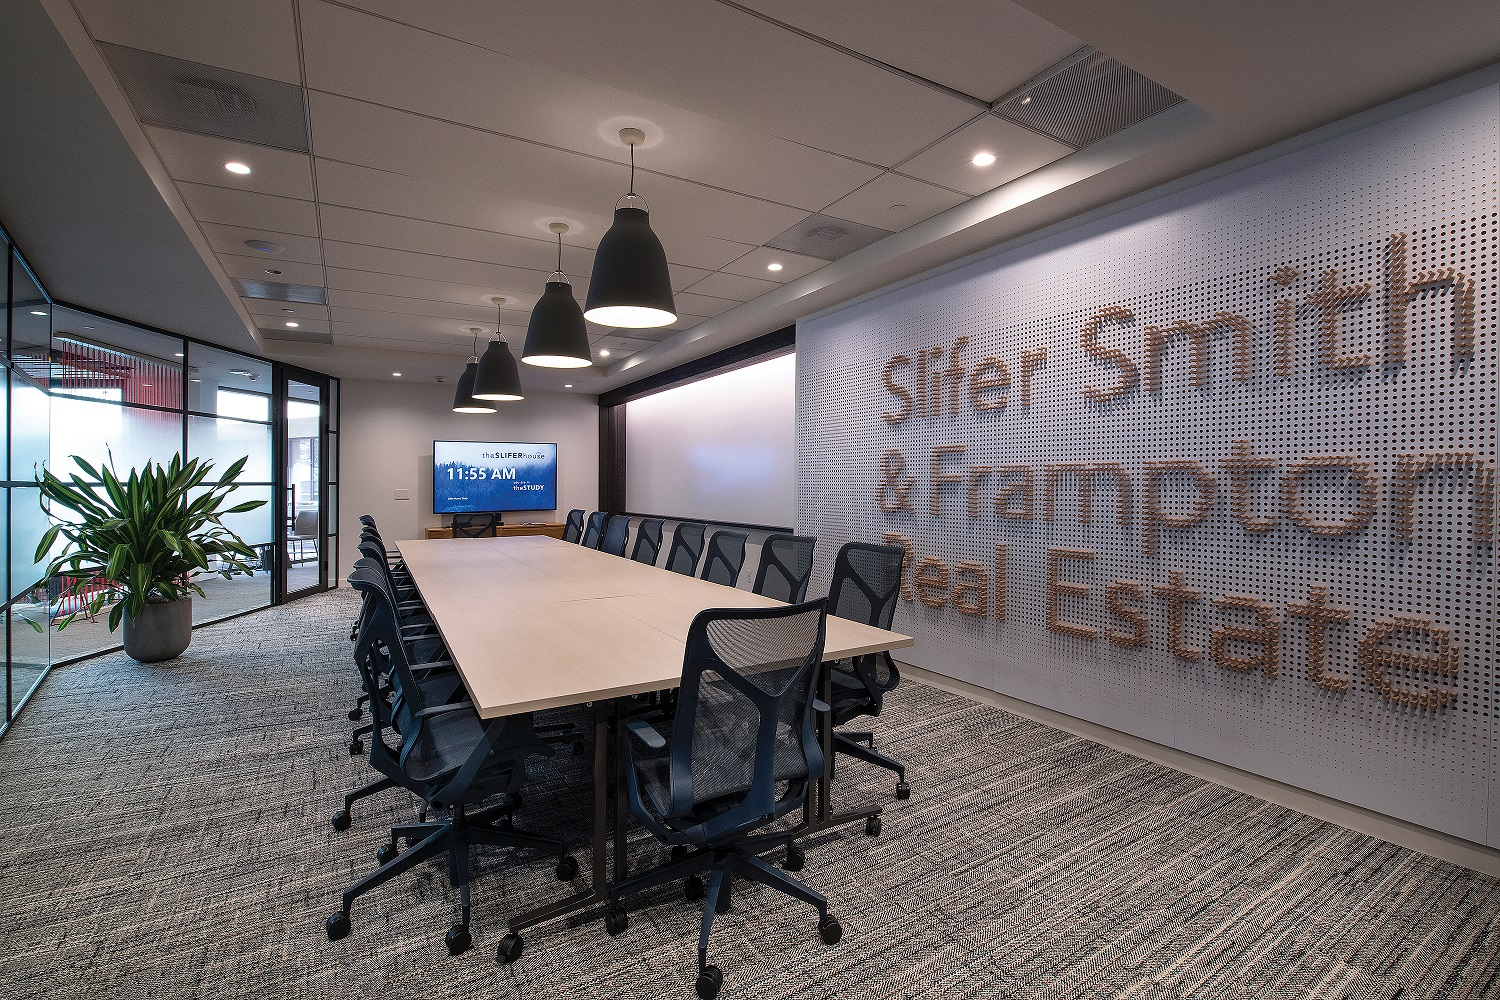 State of the art conference room in real estate office